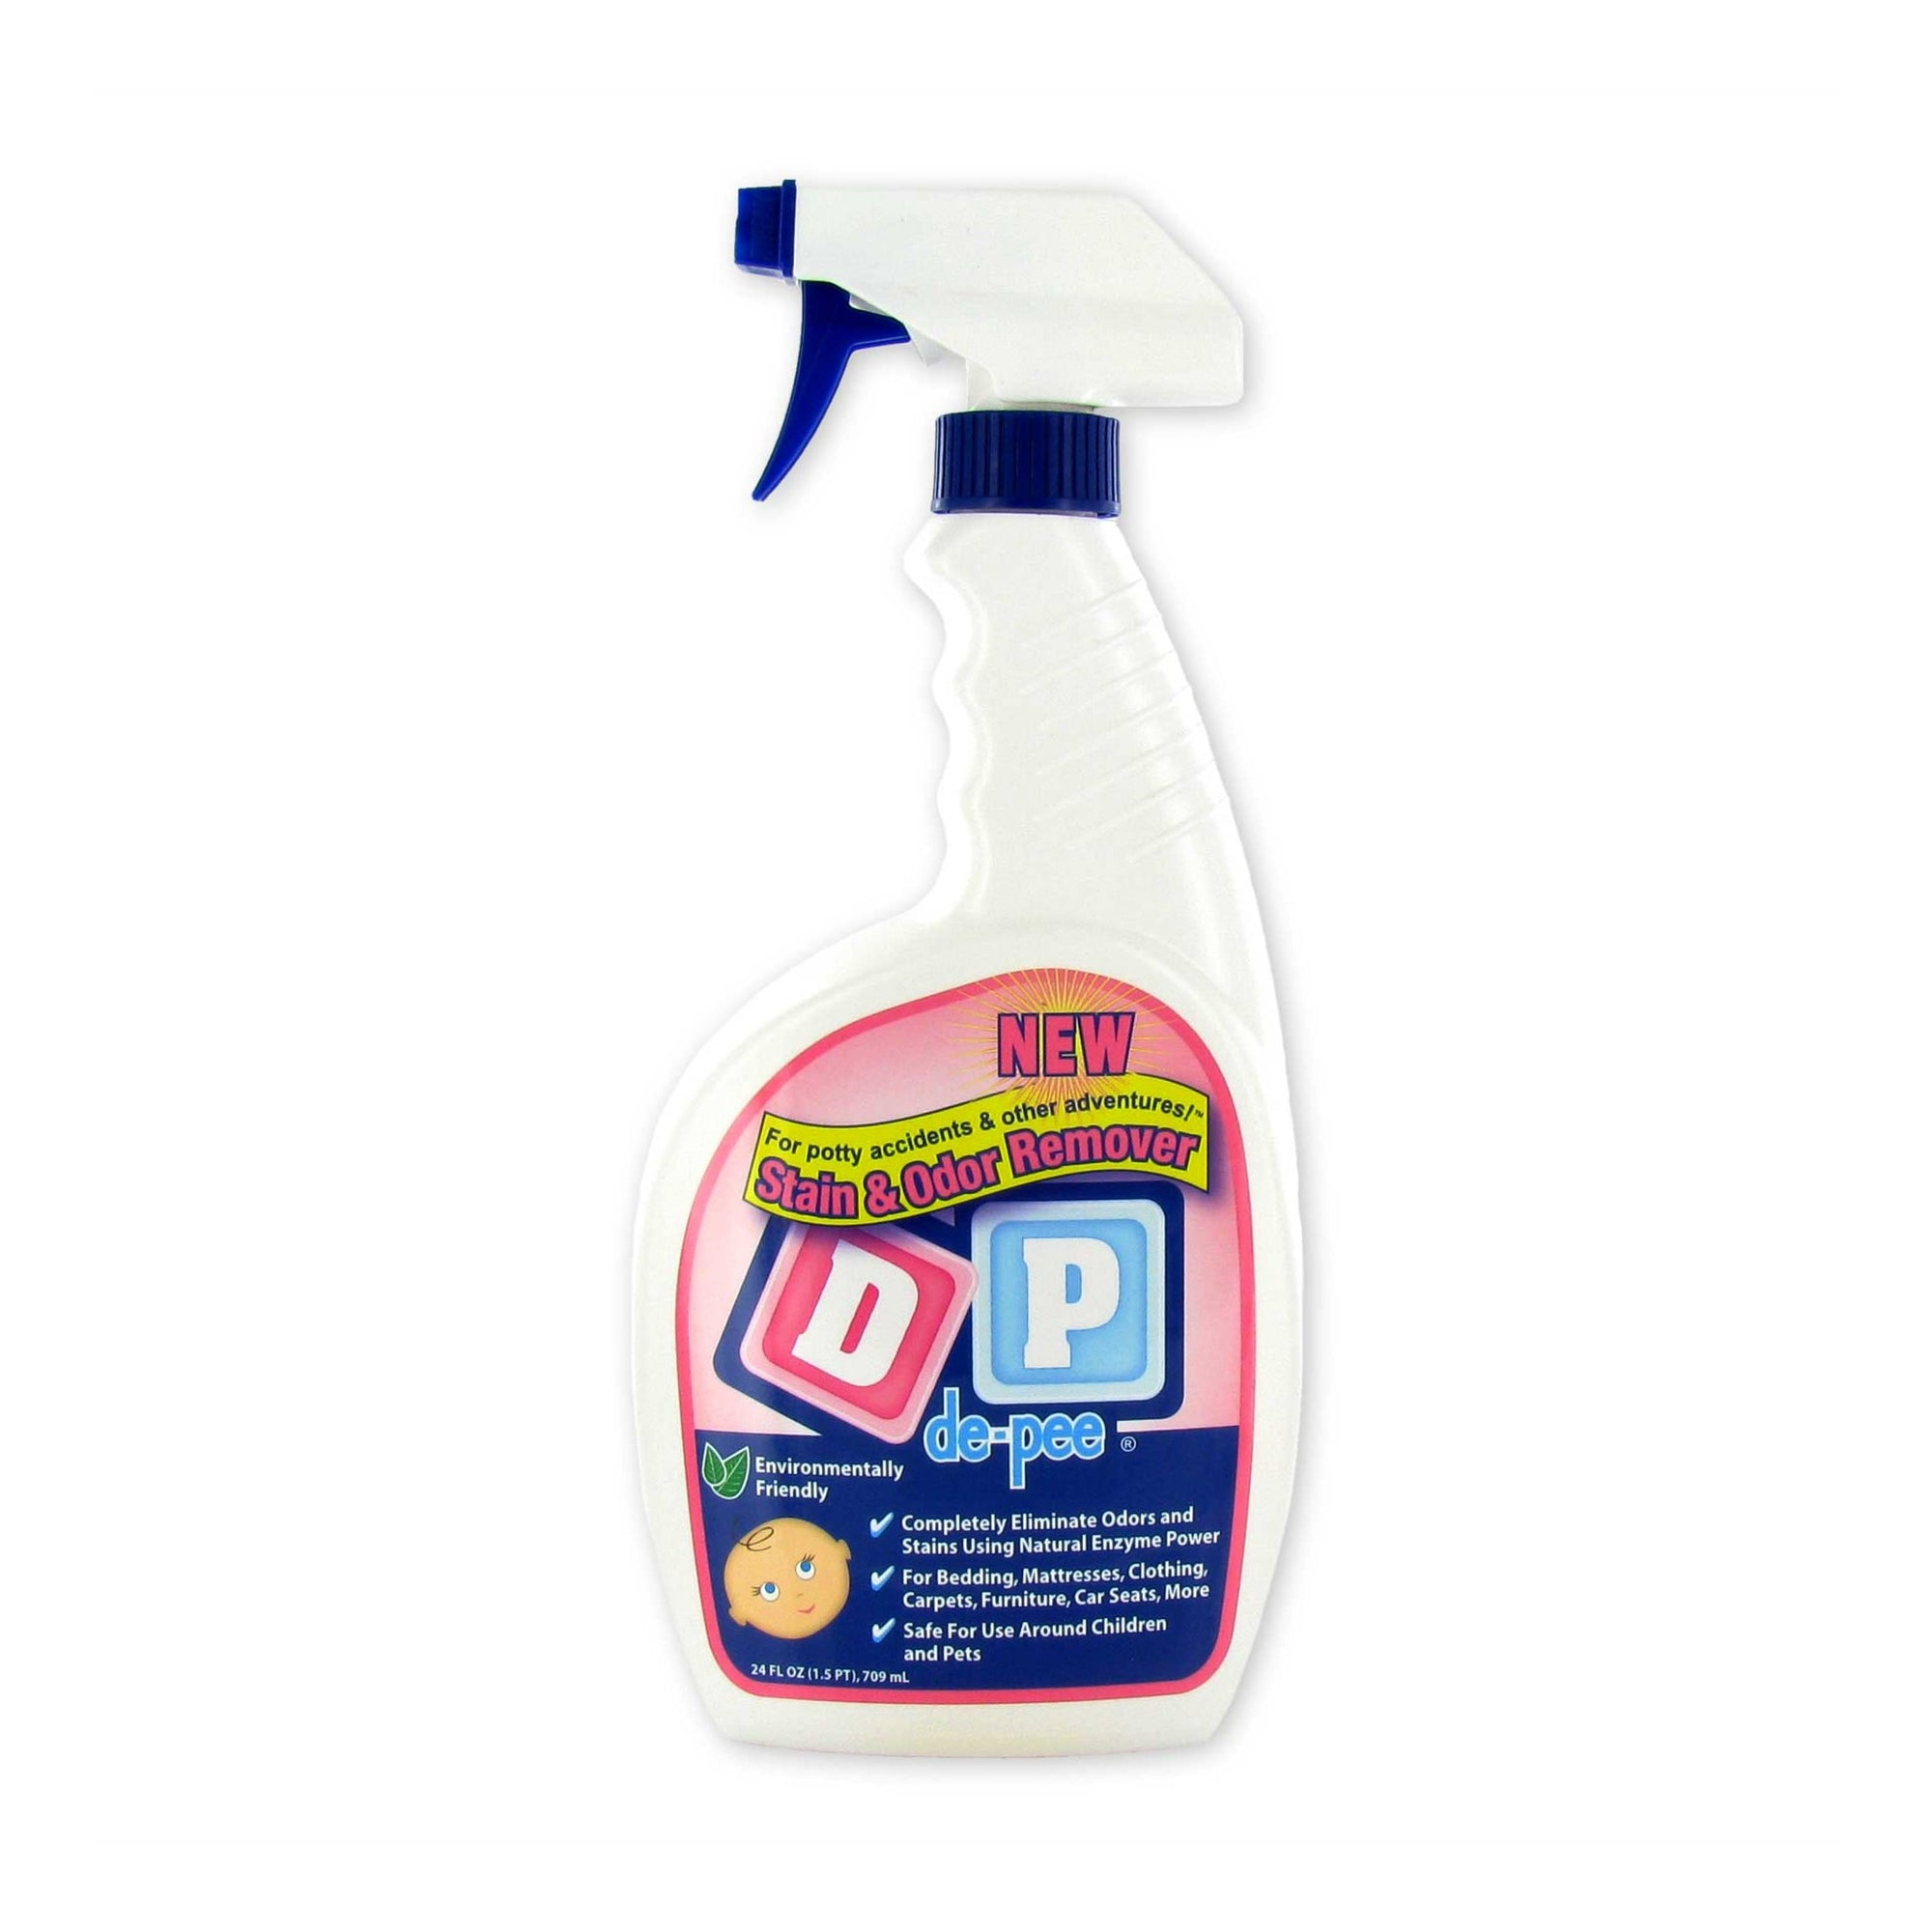 DP (de-pee) Stain & Odor Remover - 24 Ounce Spray Bottle